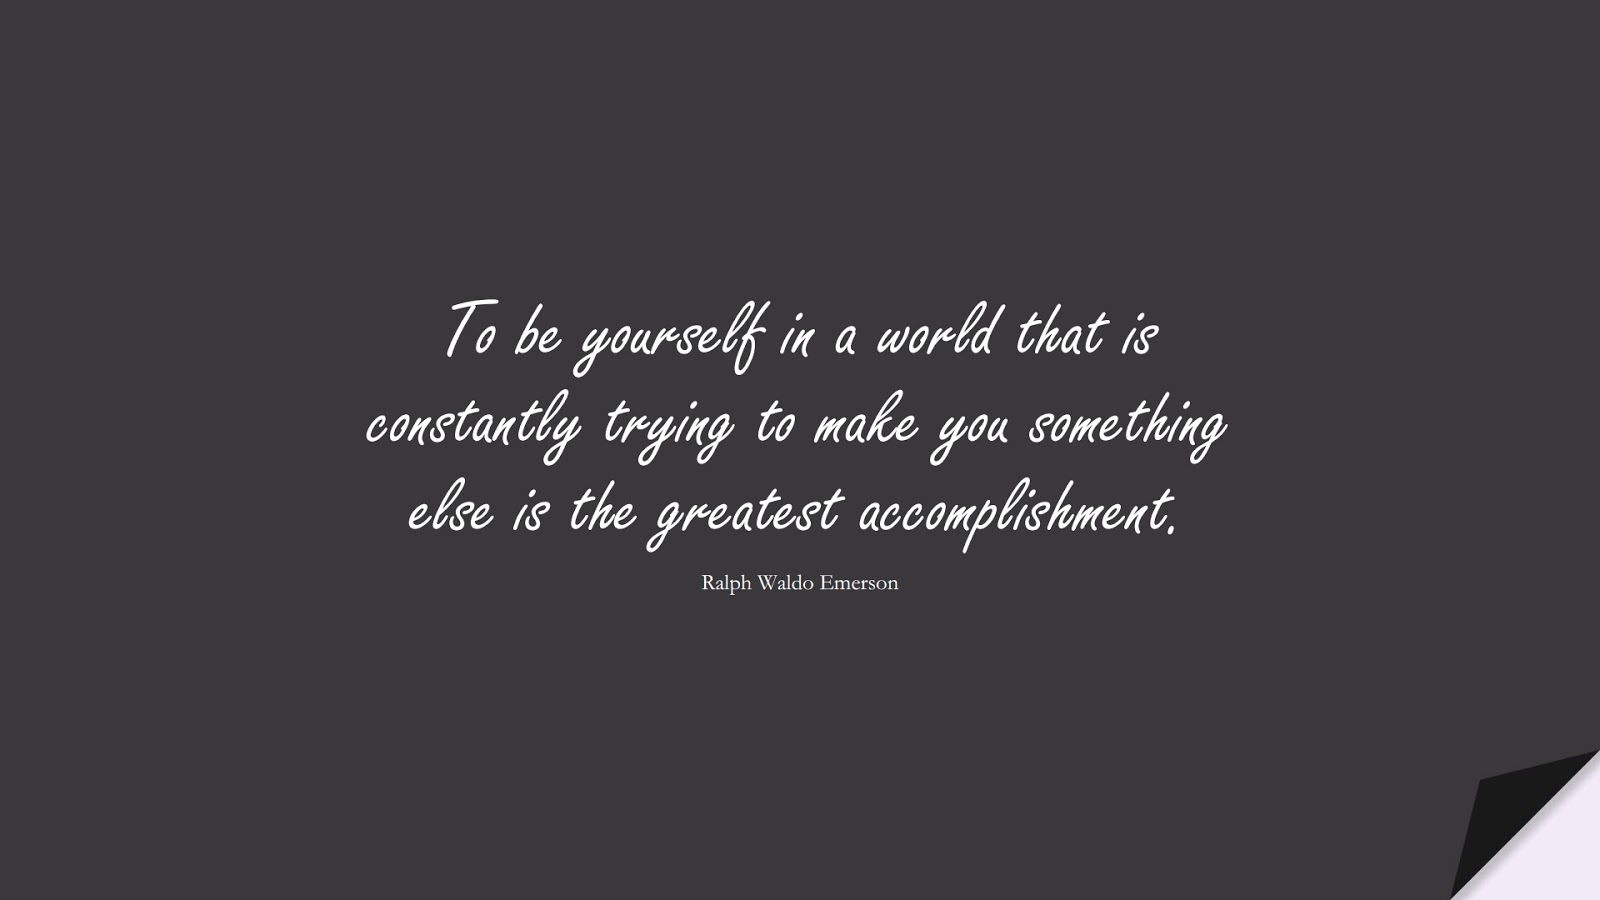 To be yourself in a world that is constantly trying to make you something else is the greatest accomplishment. (Ralph Waldo Emerson);  #LoveYourselfQuotes